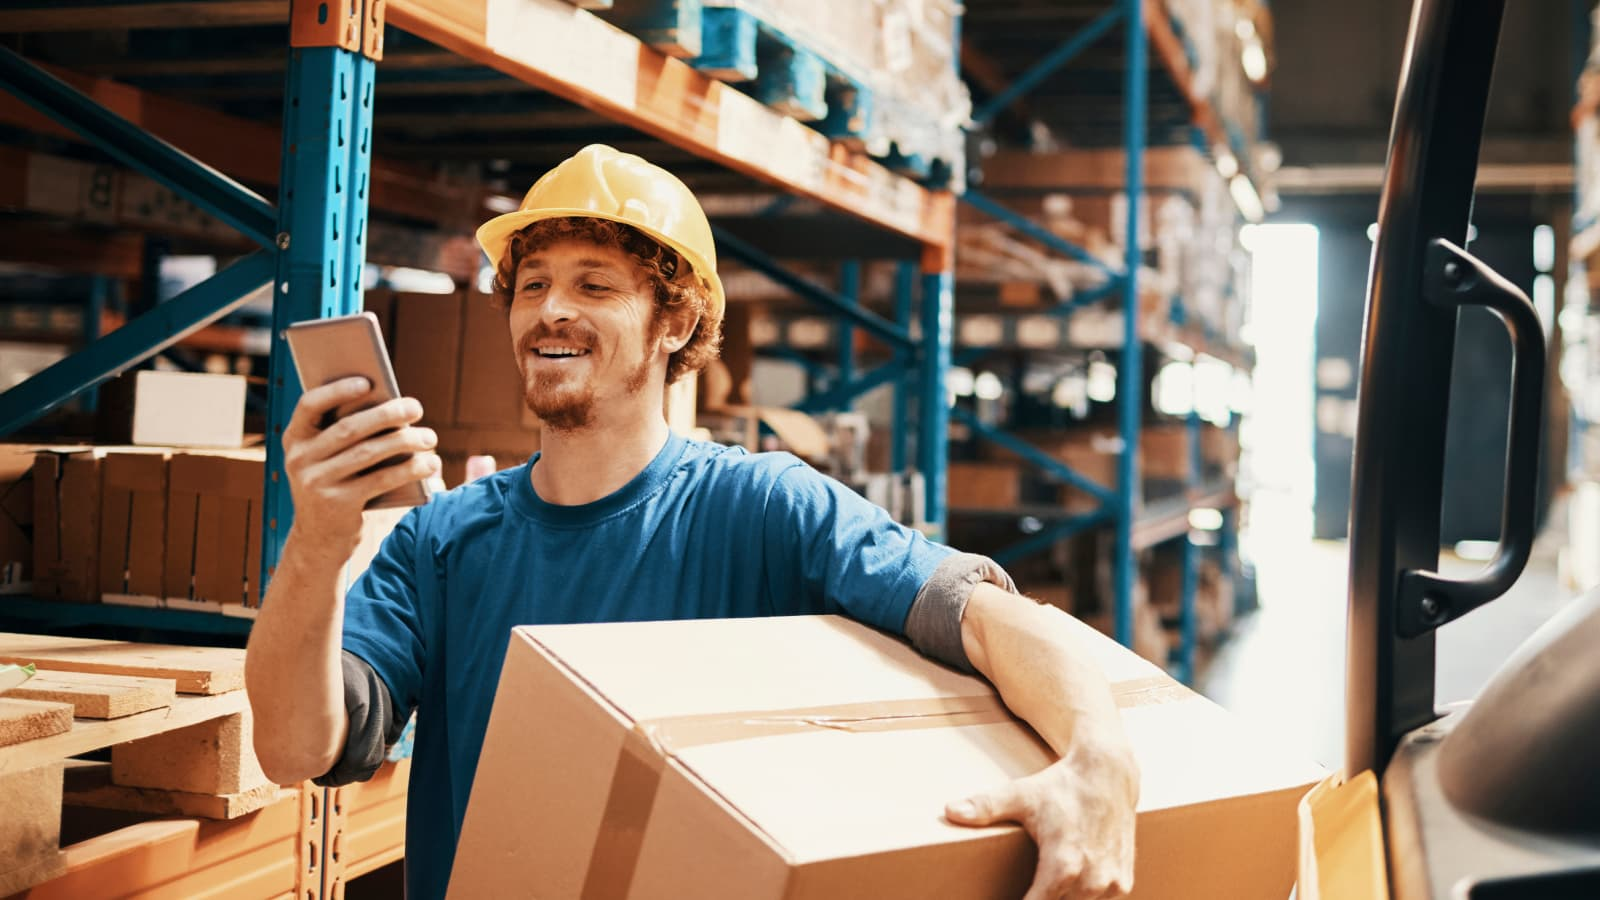 Recall InfoLink recall responder looking at a phone in a warehouse